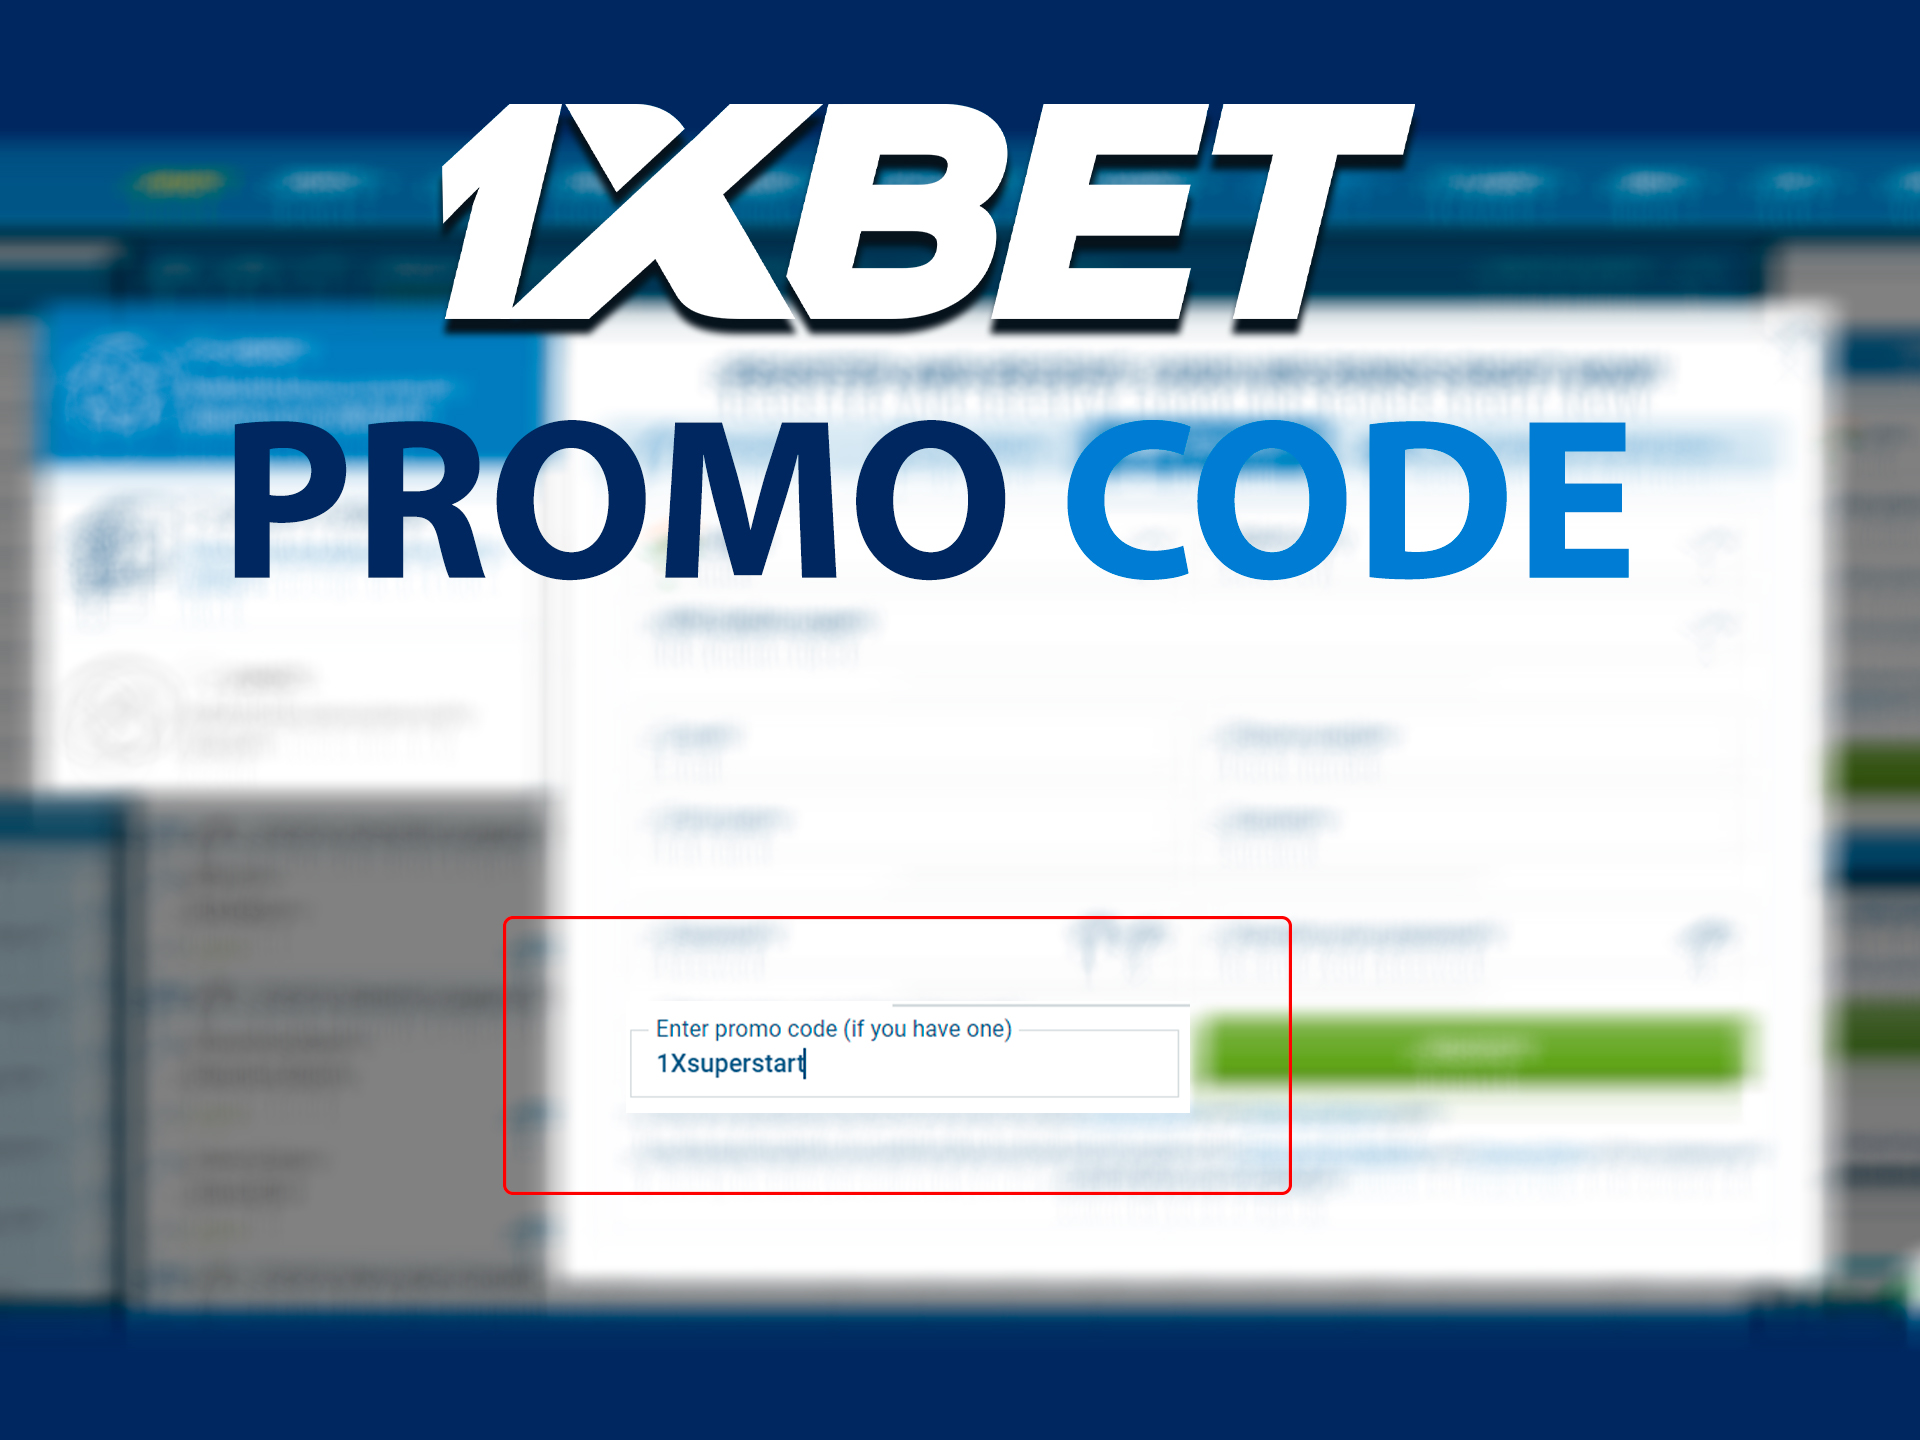 promo code for an extra bonus when registering at 1xBet.